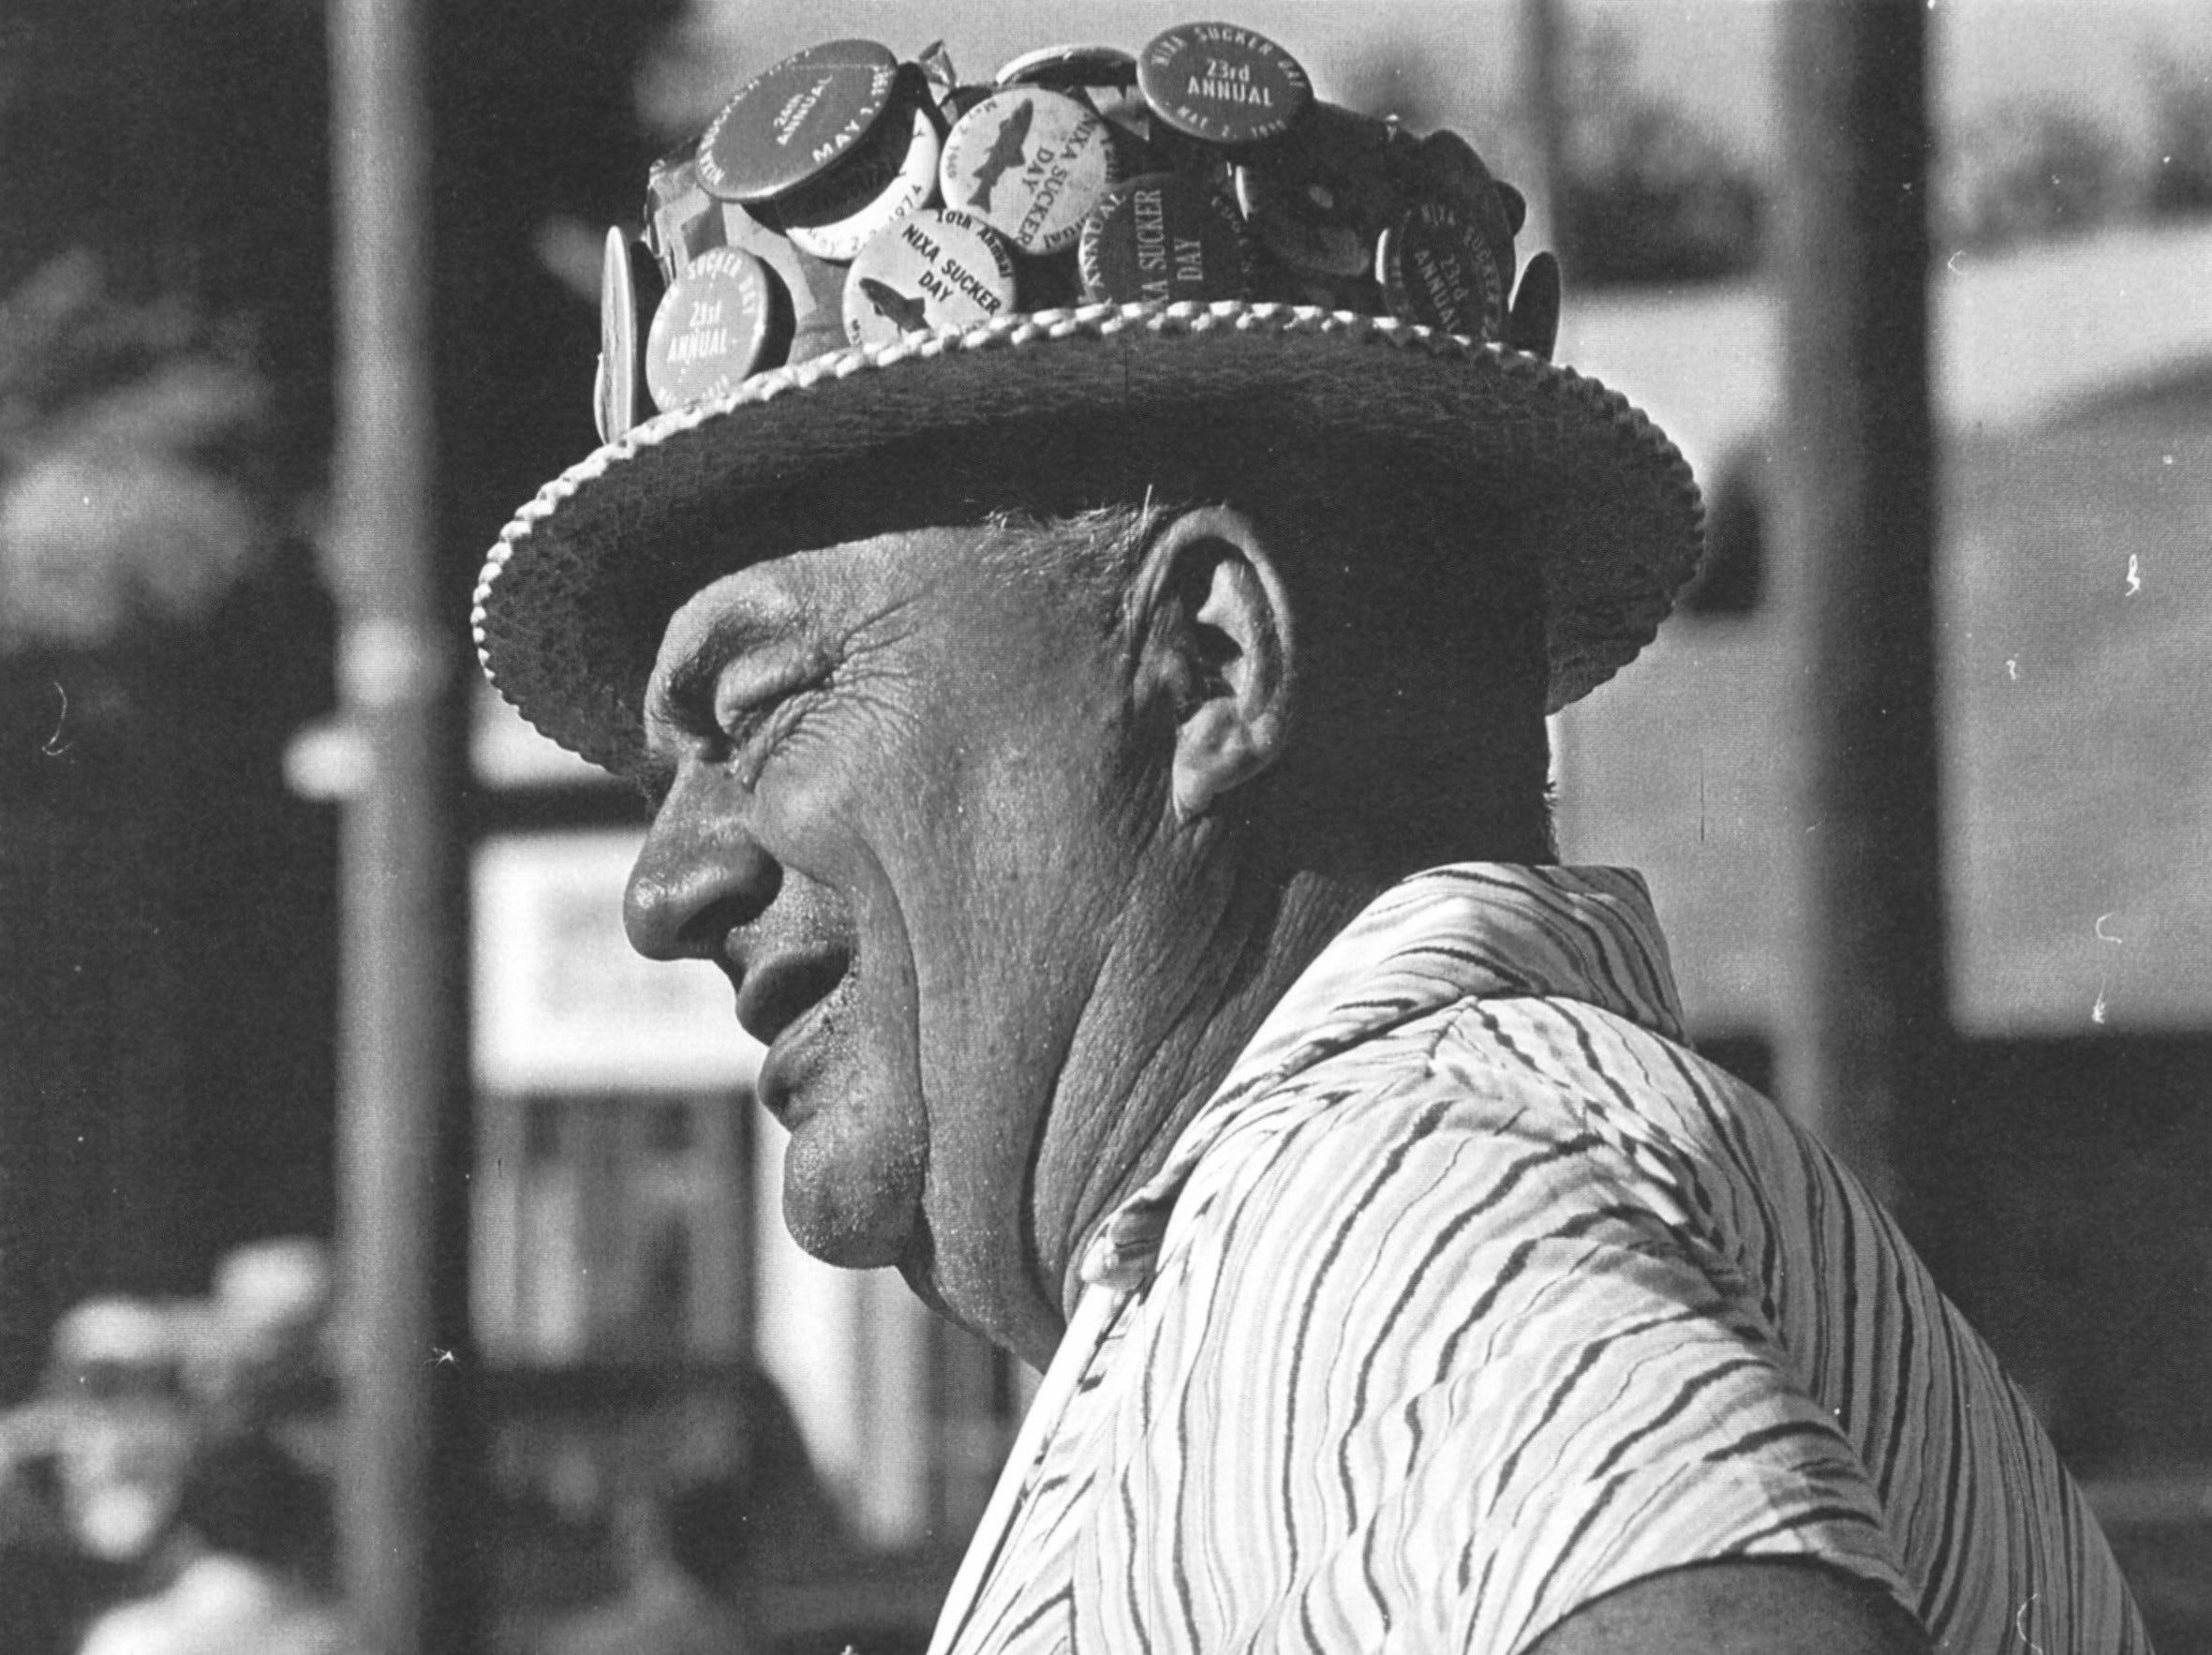 Finis Gold wearing his Sucker Day hat.  A vintage Sucker Days photo from the city of Nixa's collection.